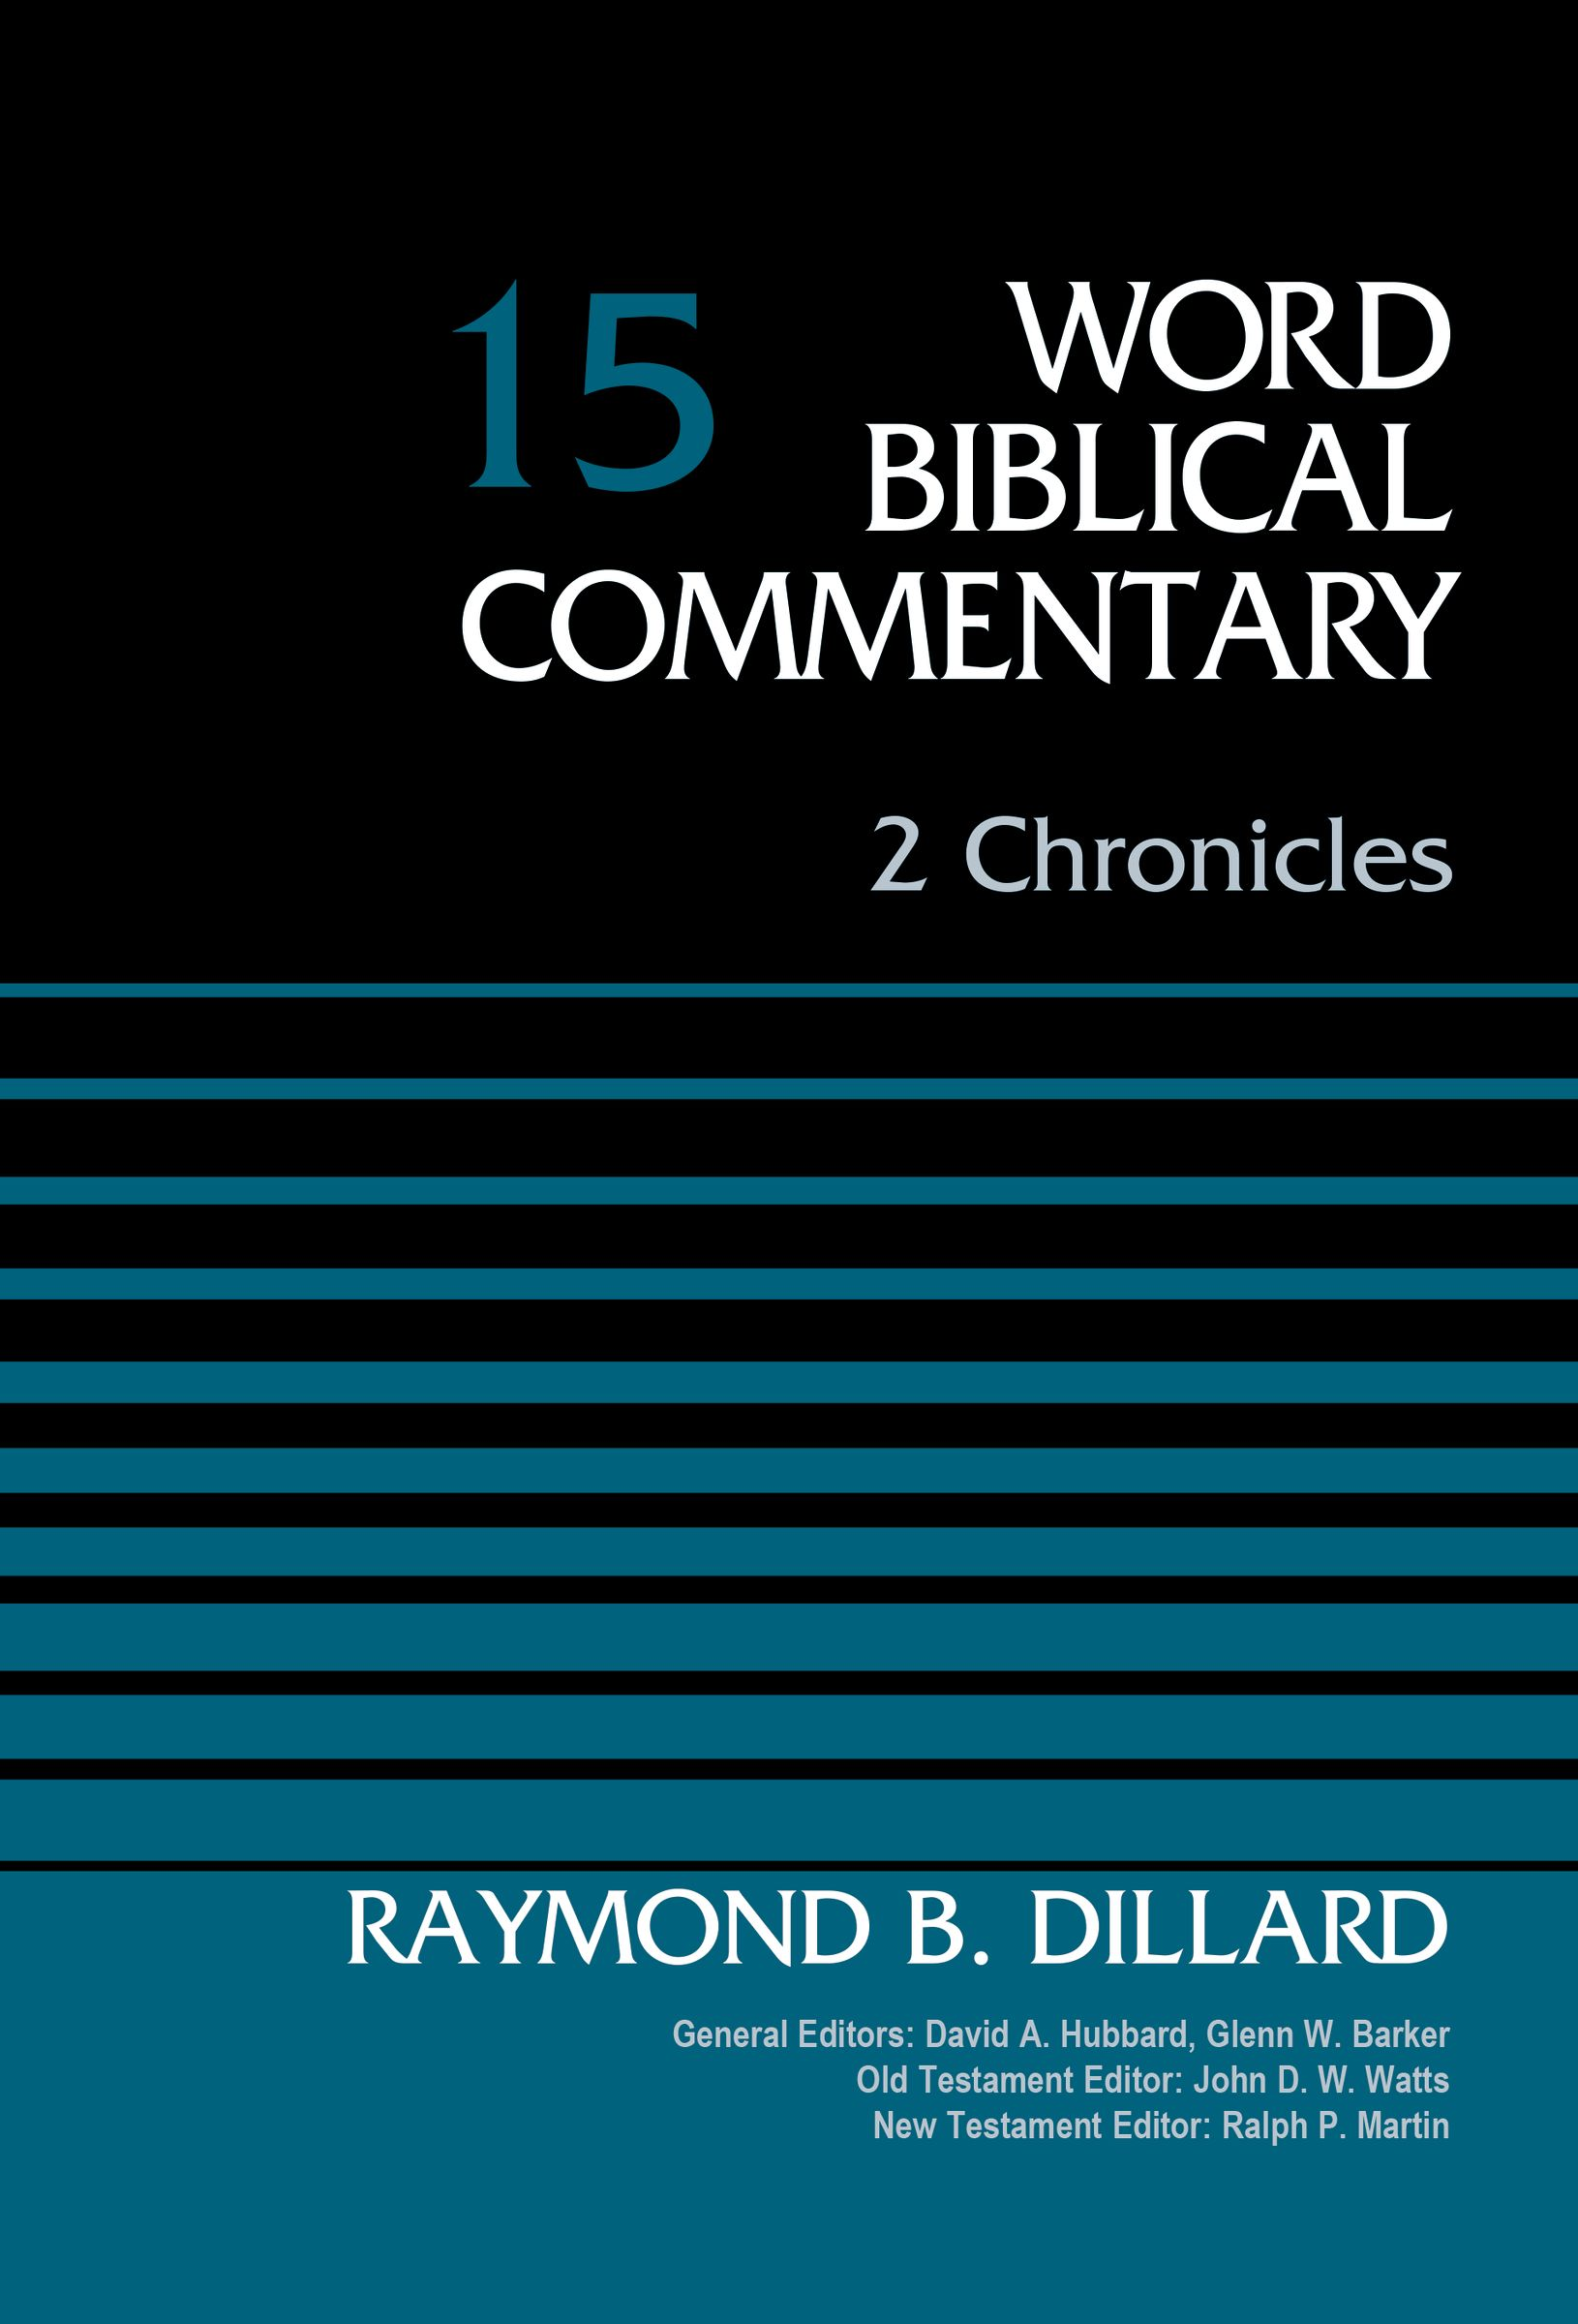 2 Chronicles, Volume 15